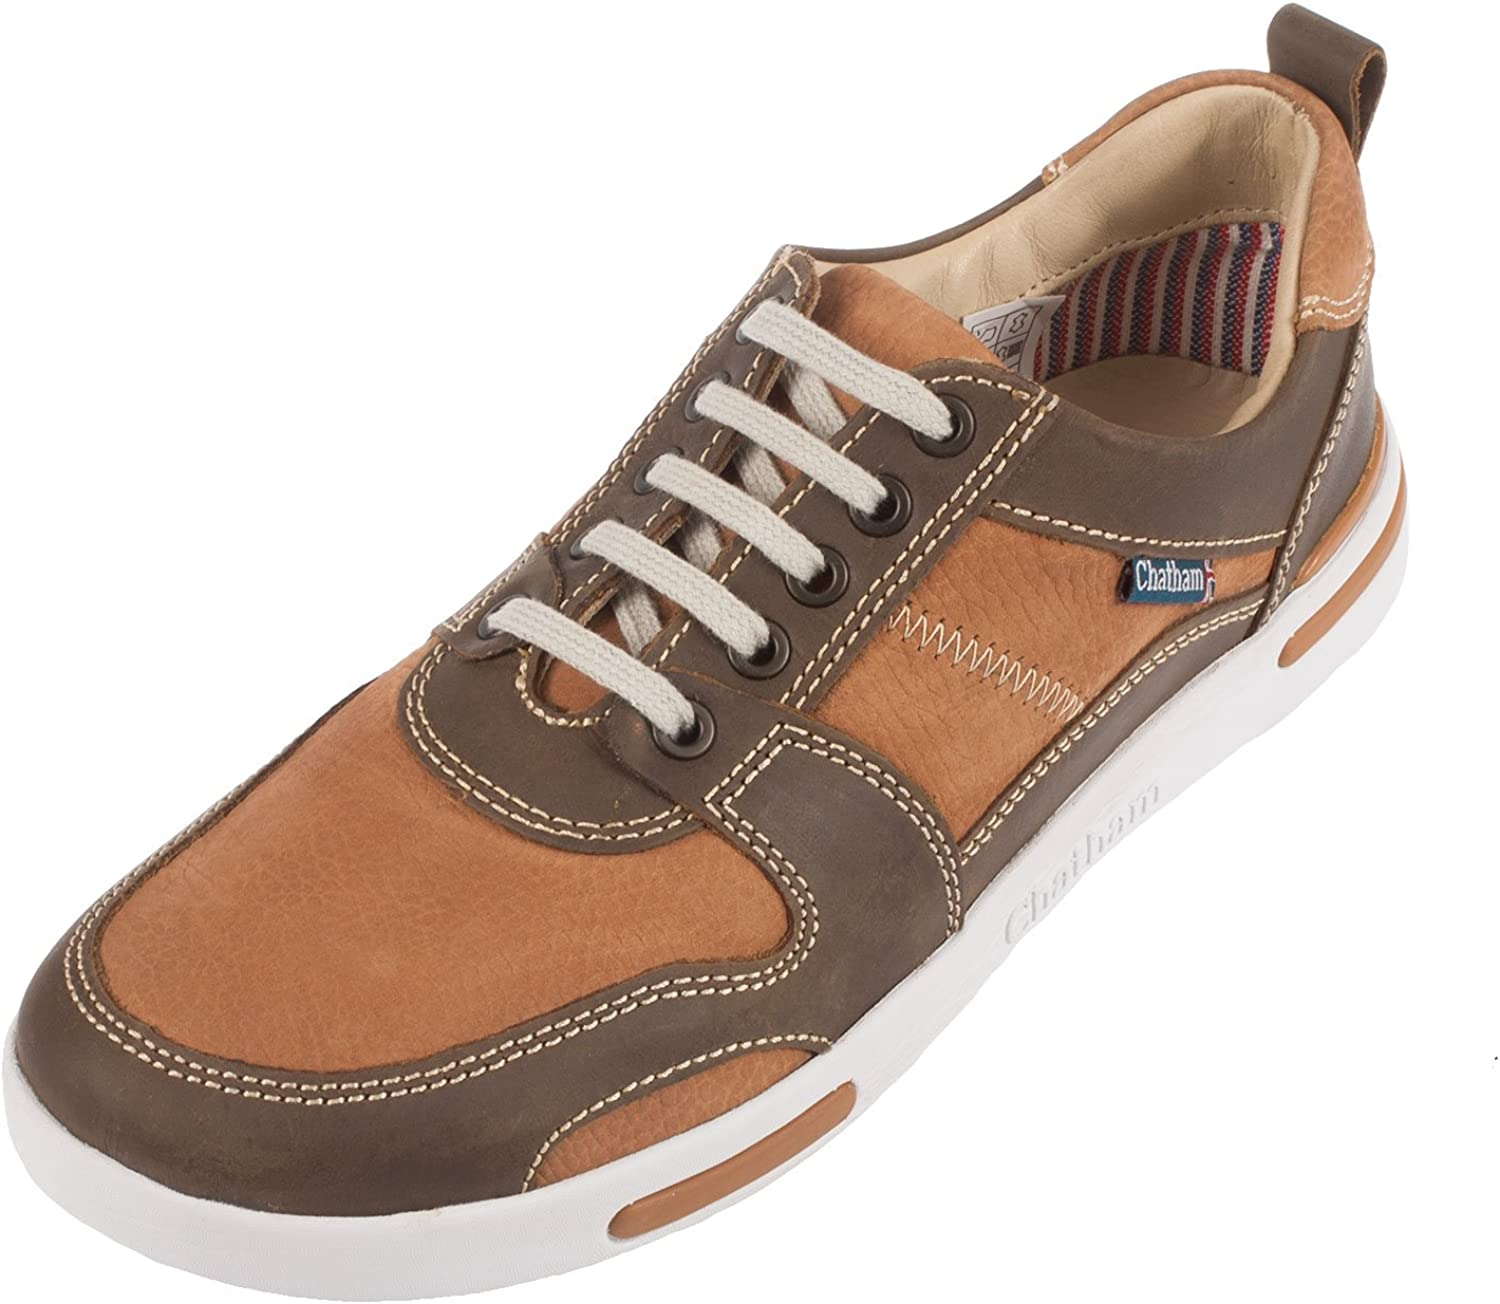 Chatham Men's Recoil Slole Spring Lace Up Sneaker